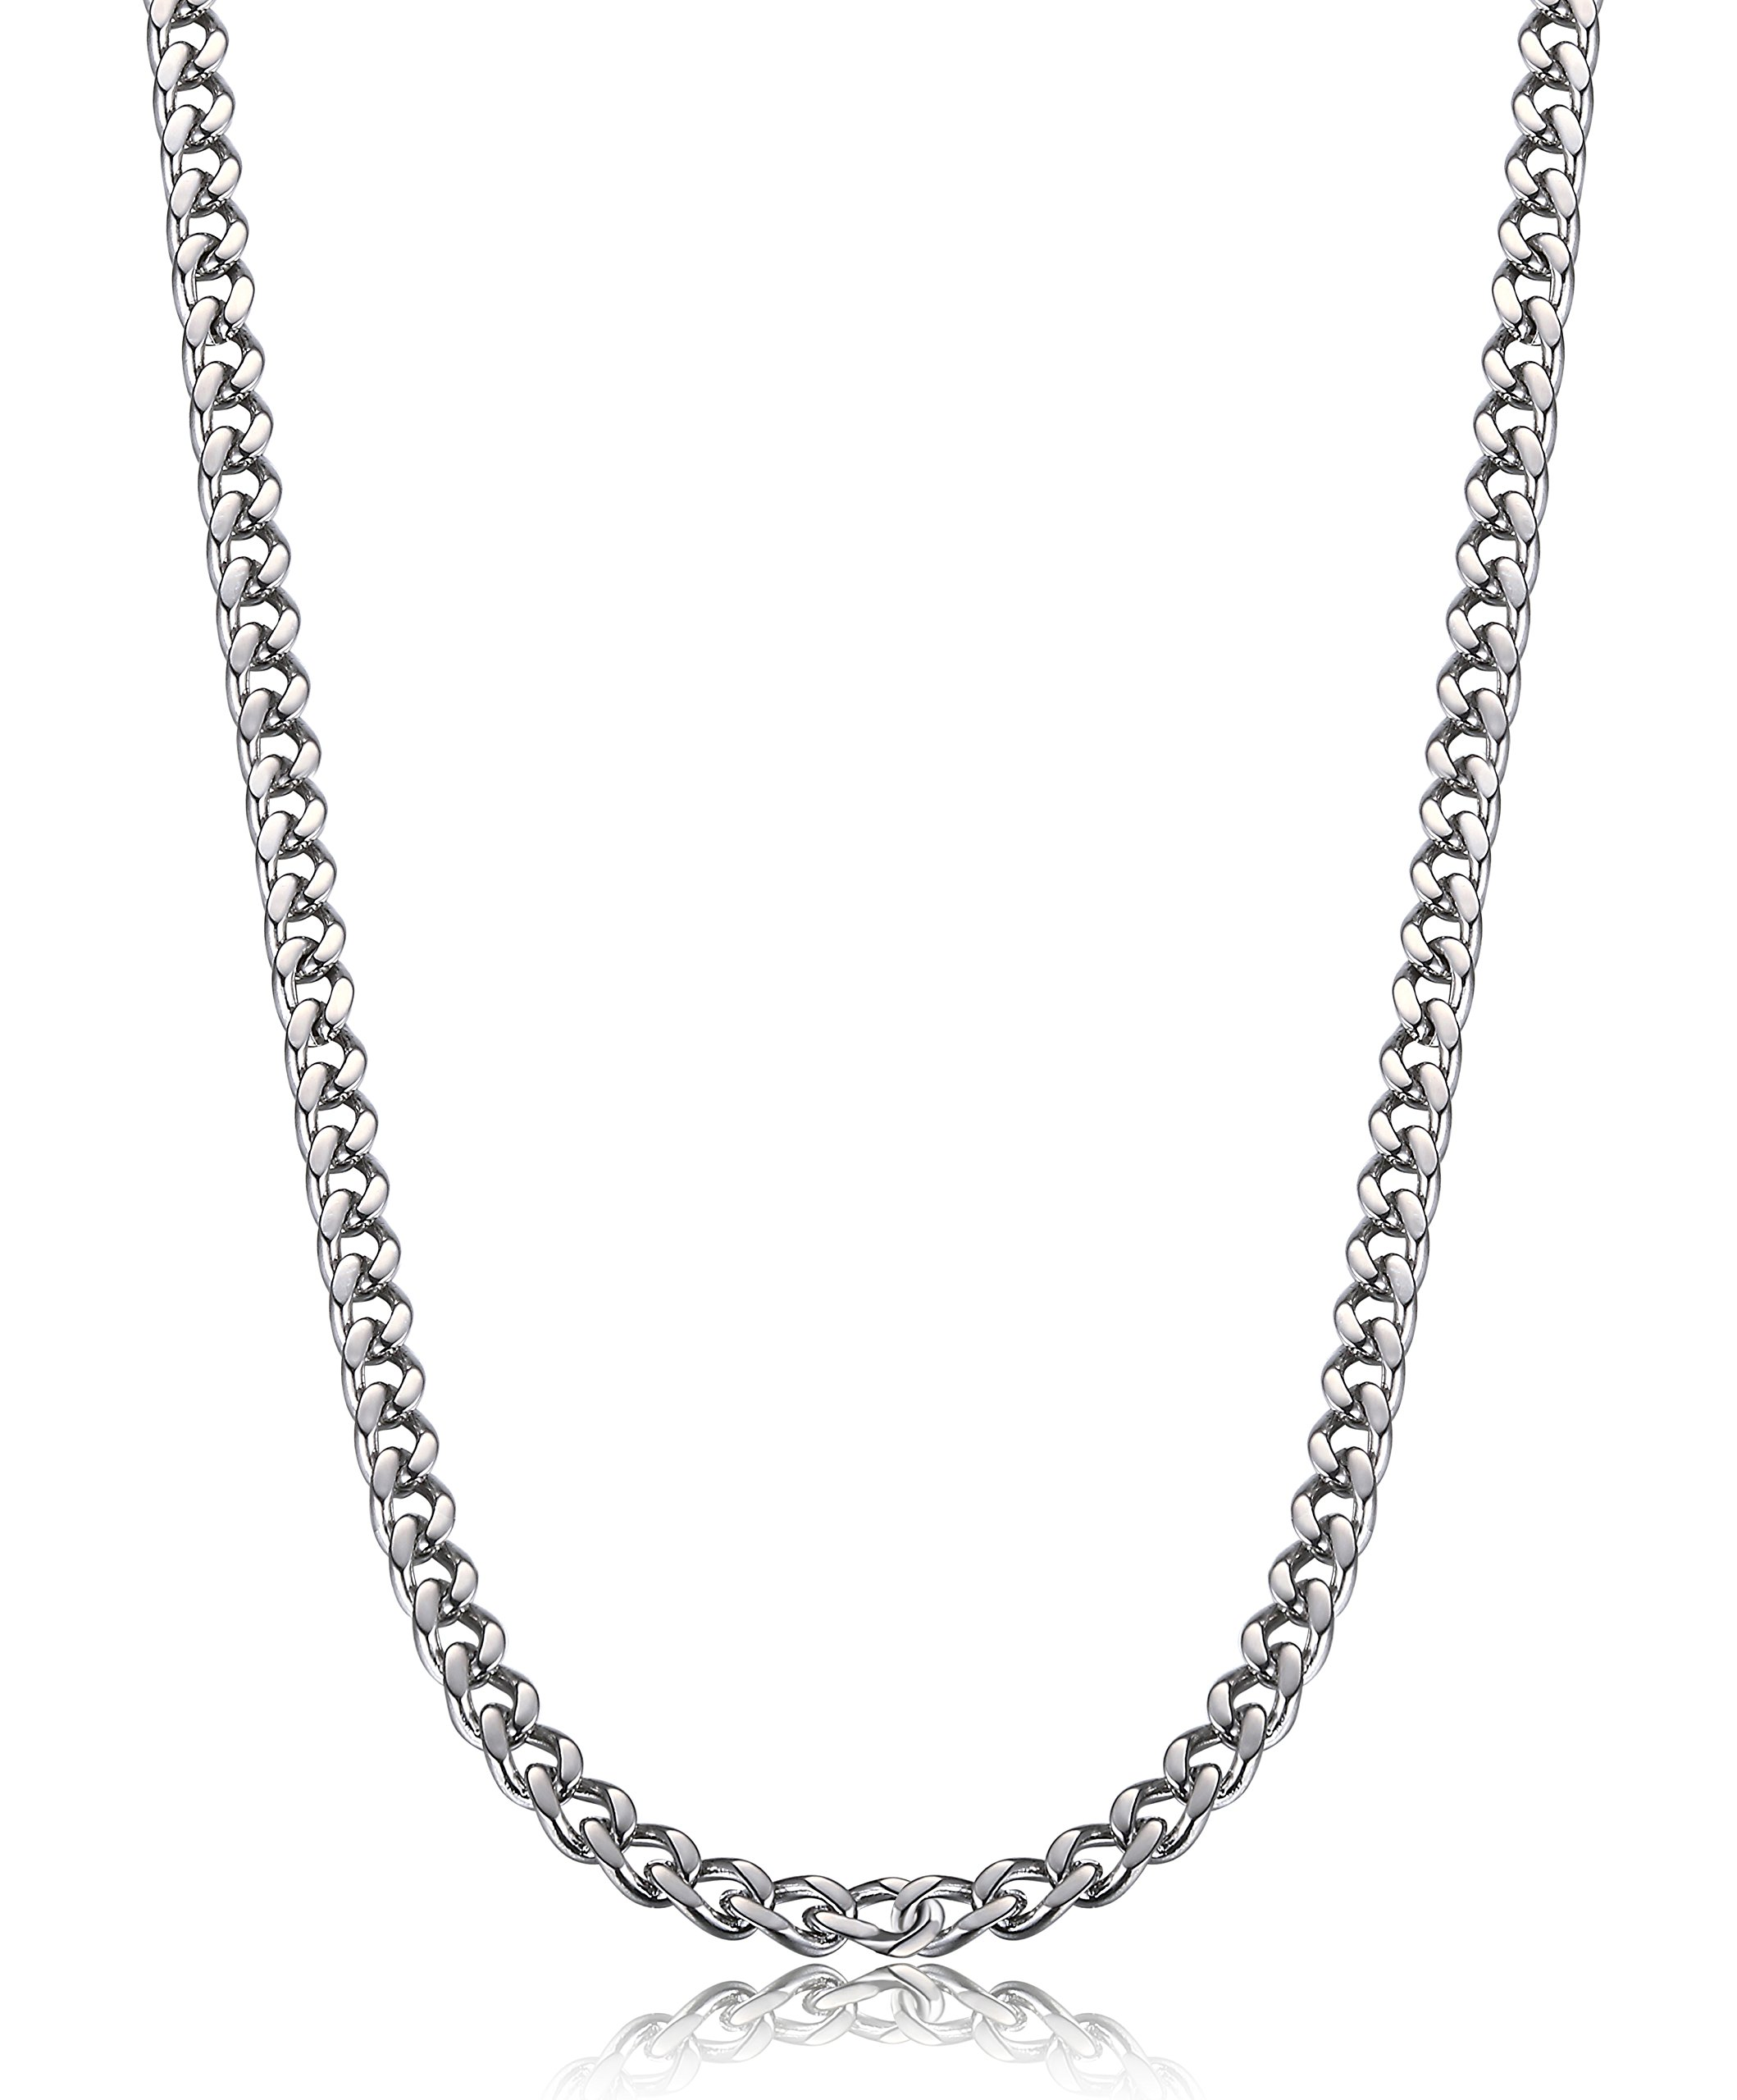 FIBO STEEL 3.5-6 mm Stainless Steel Mens Womens Necklace Curb Link Chain, 24 inches